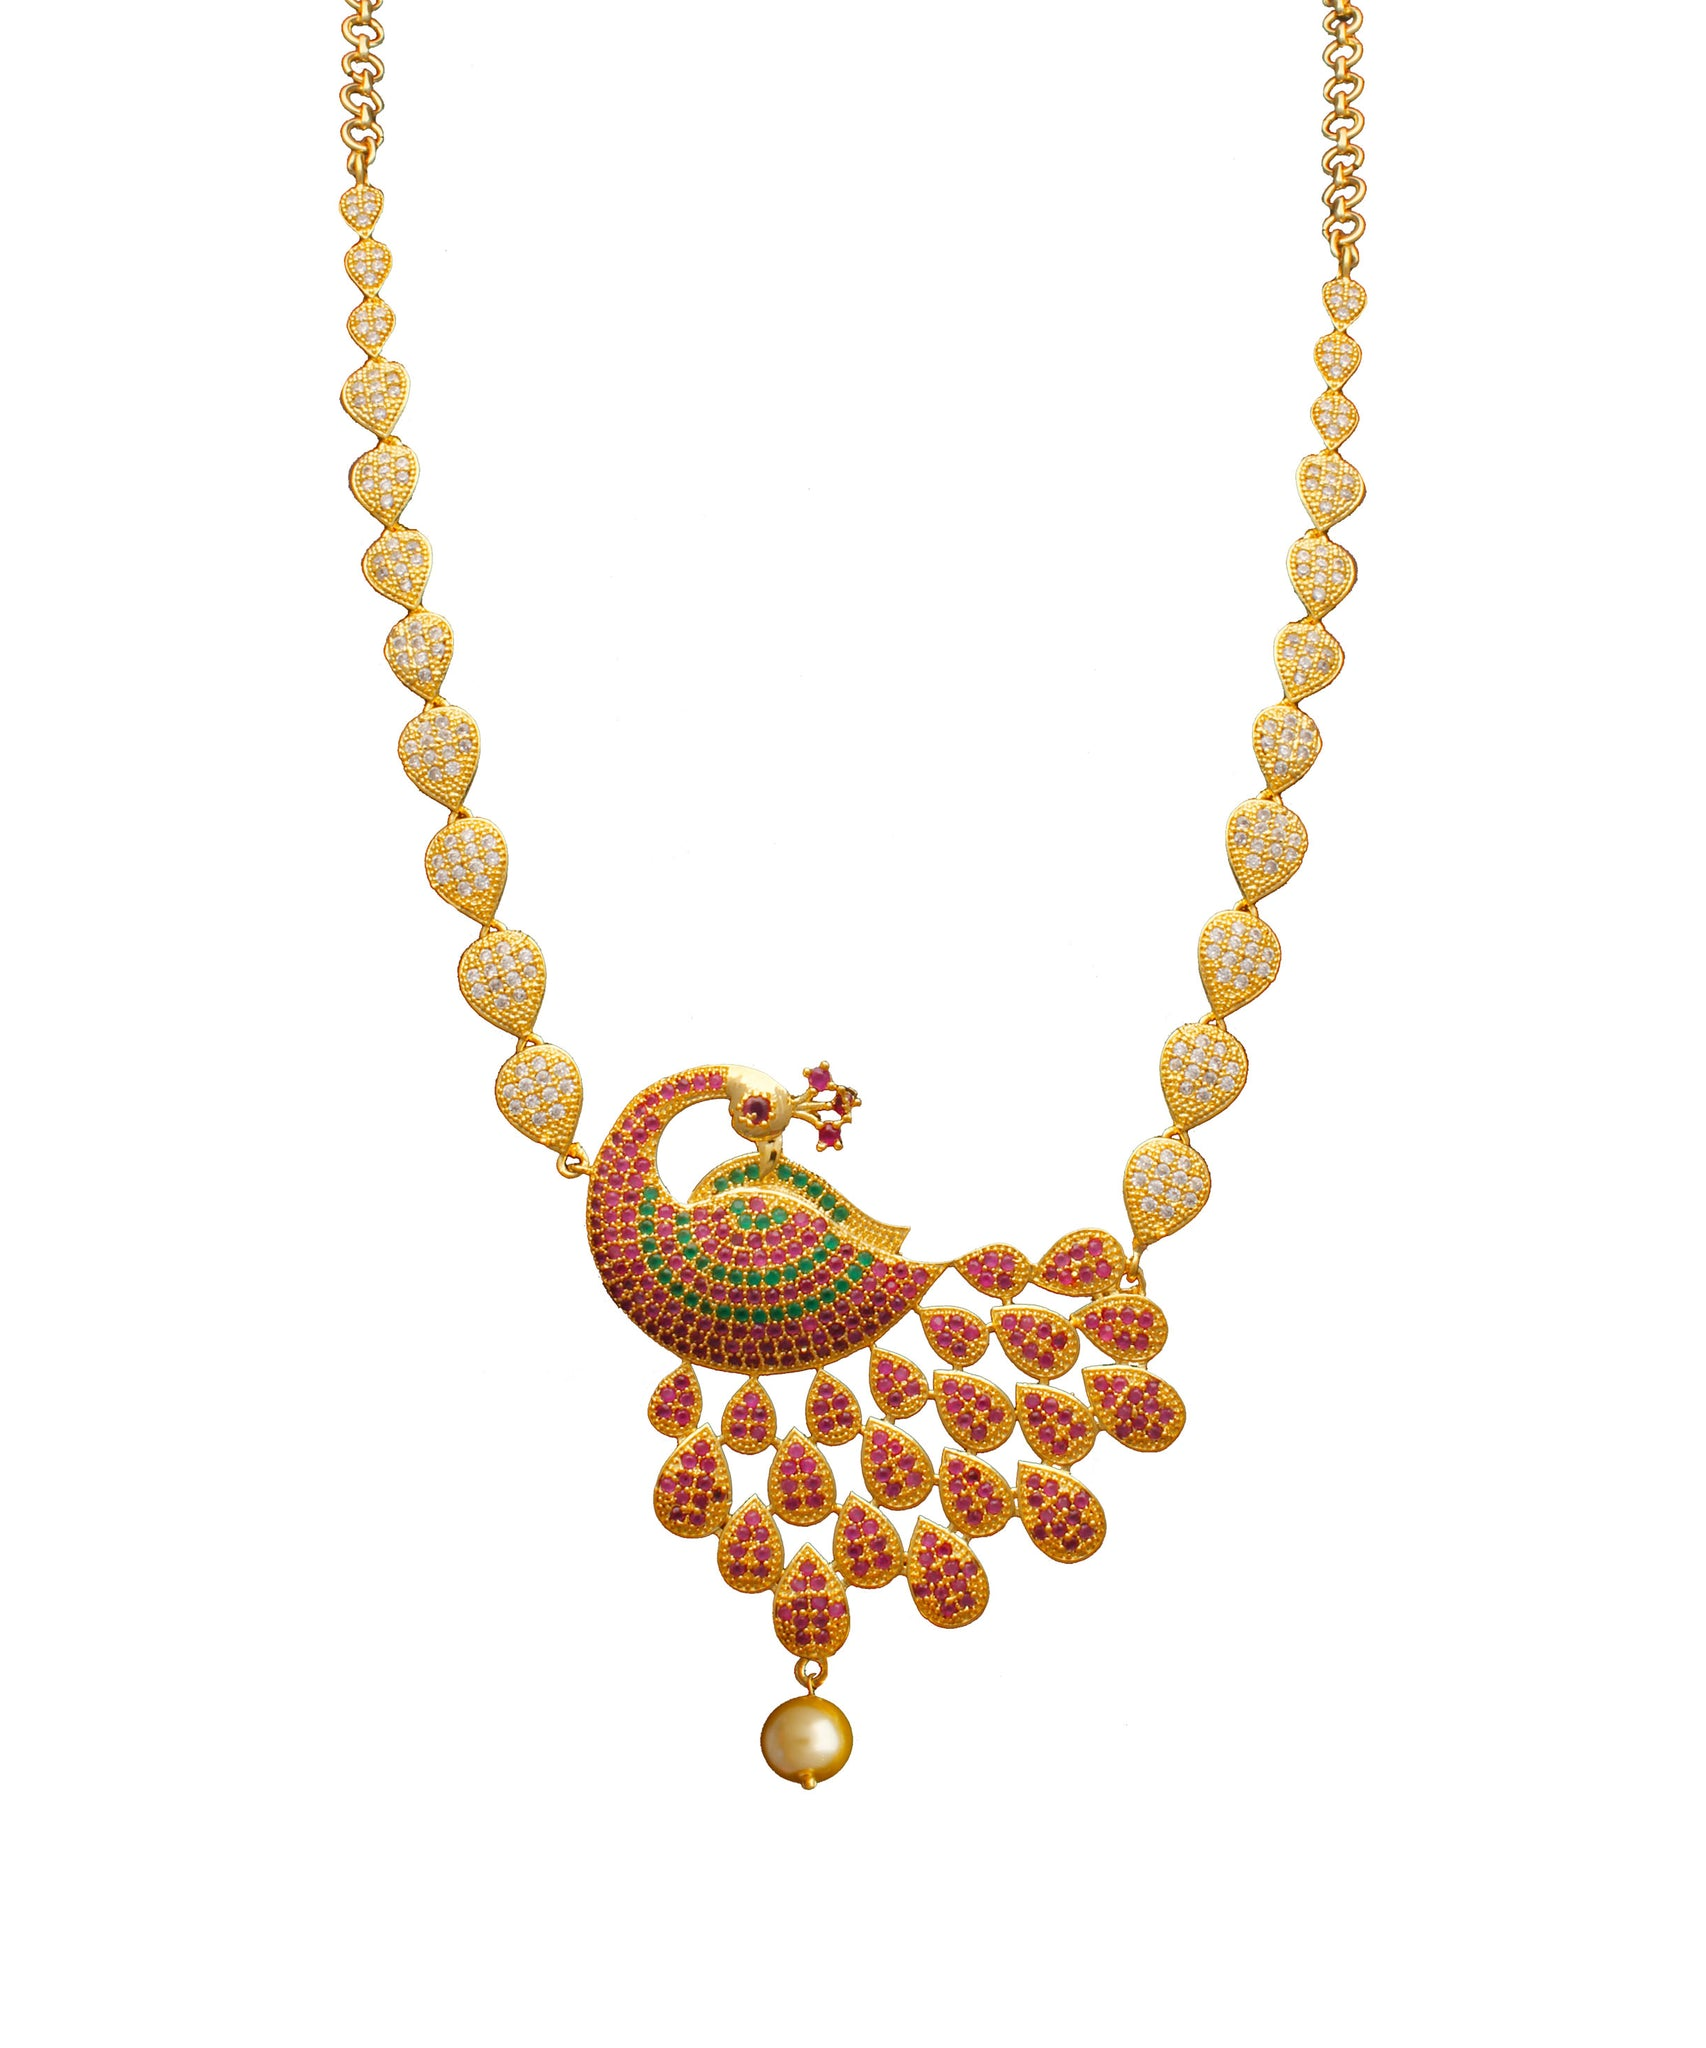 Teardrop Peacock Necklace